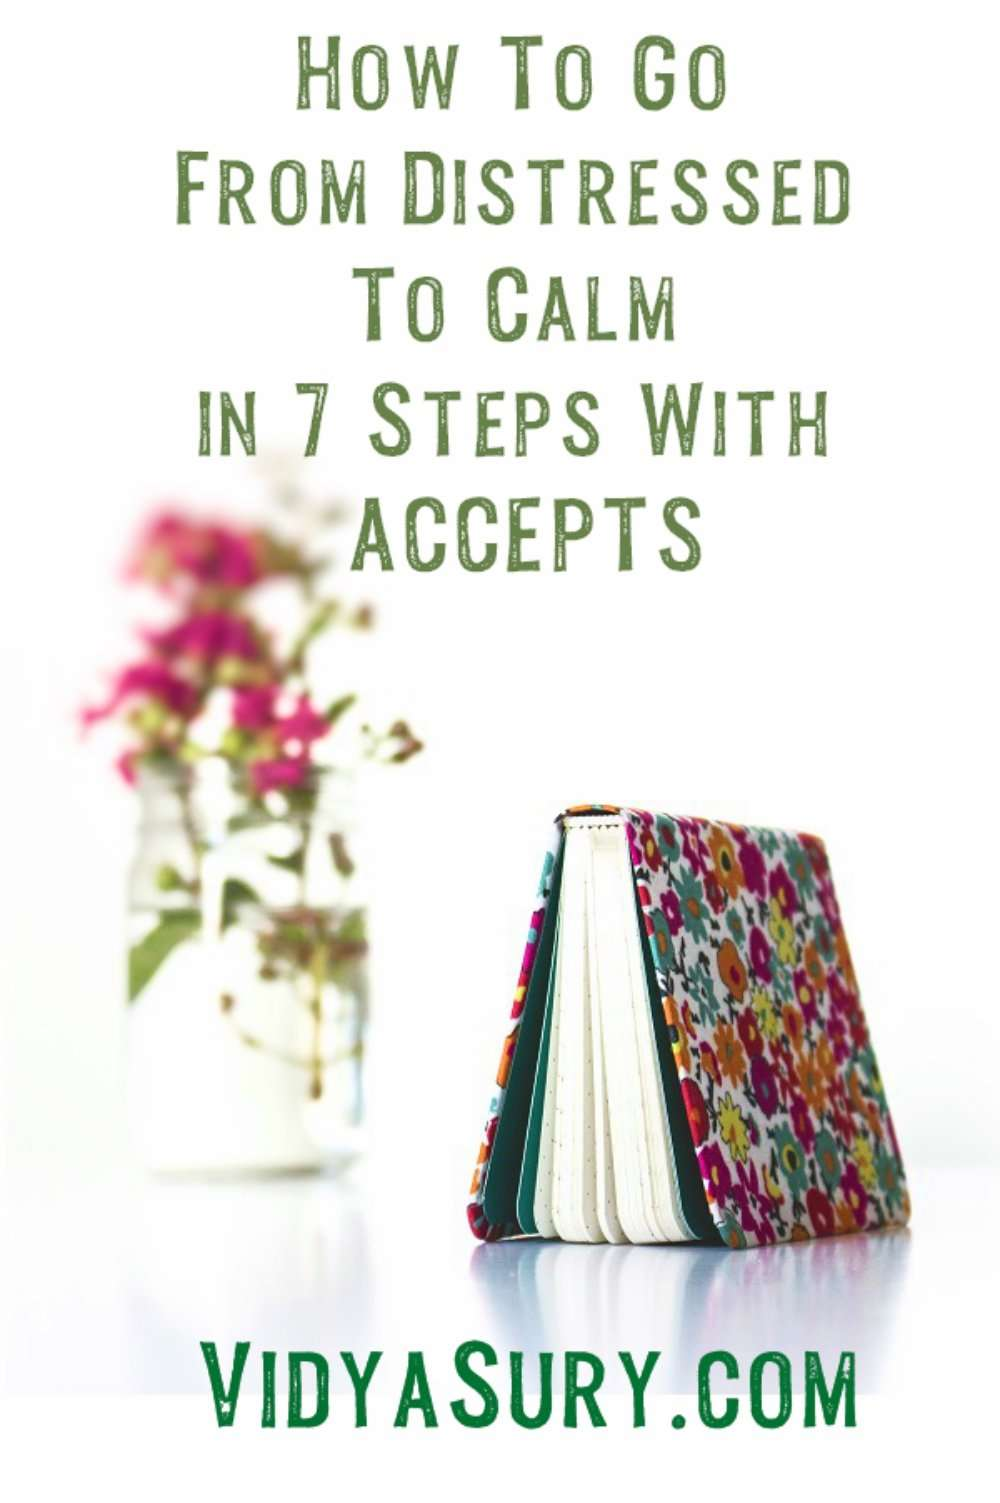 How to go from distressed to calm with ACCEPTS